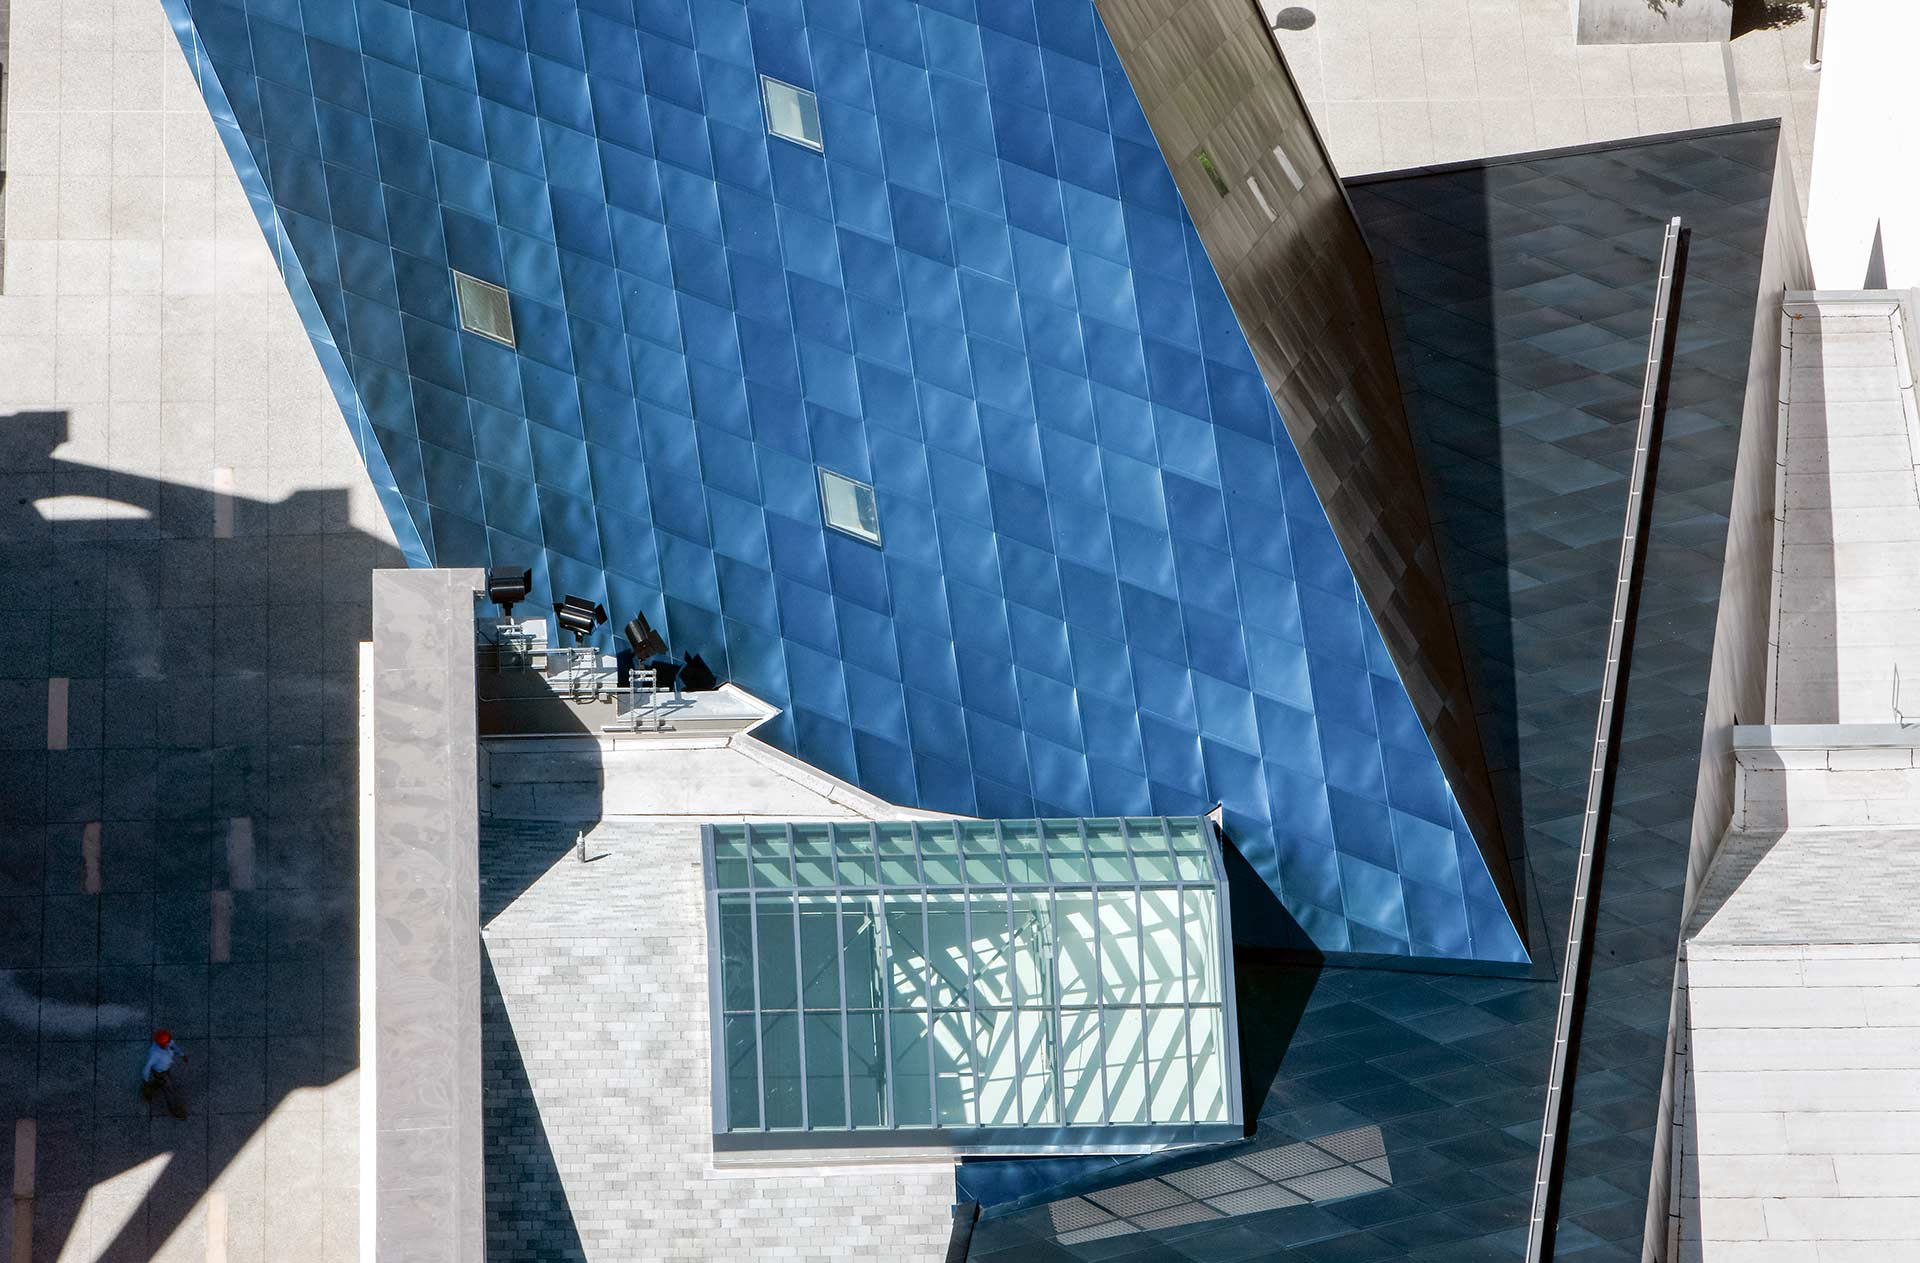 Aerial view of the blue metal panels on the Contemporary Jewish Museum in San Franicsco.